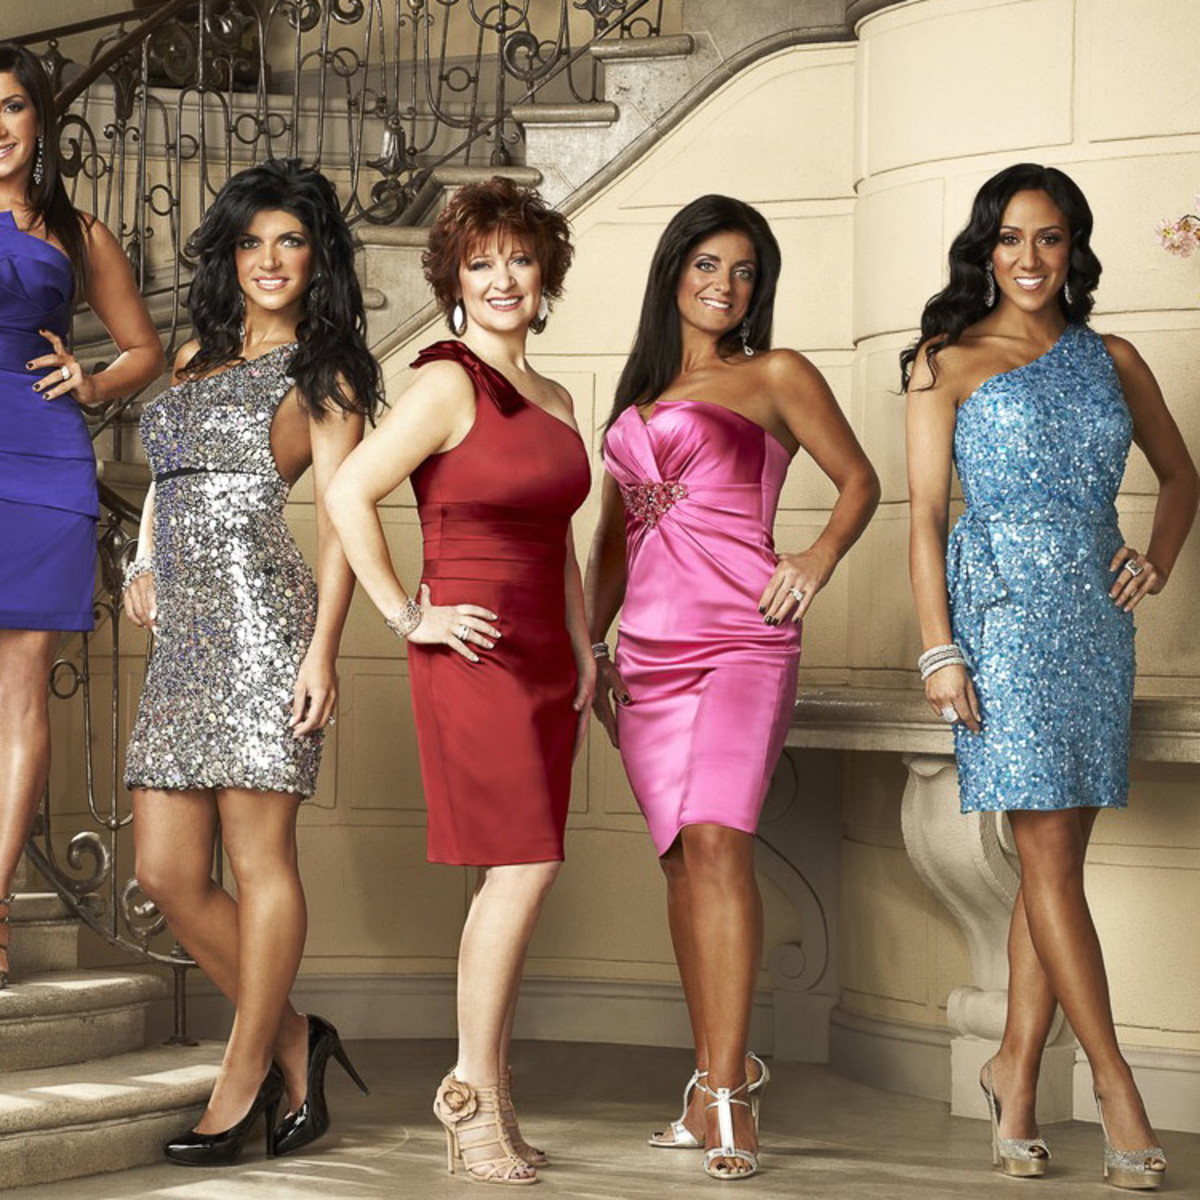 Housewives of new jersey sex mine